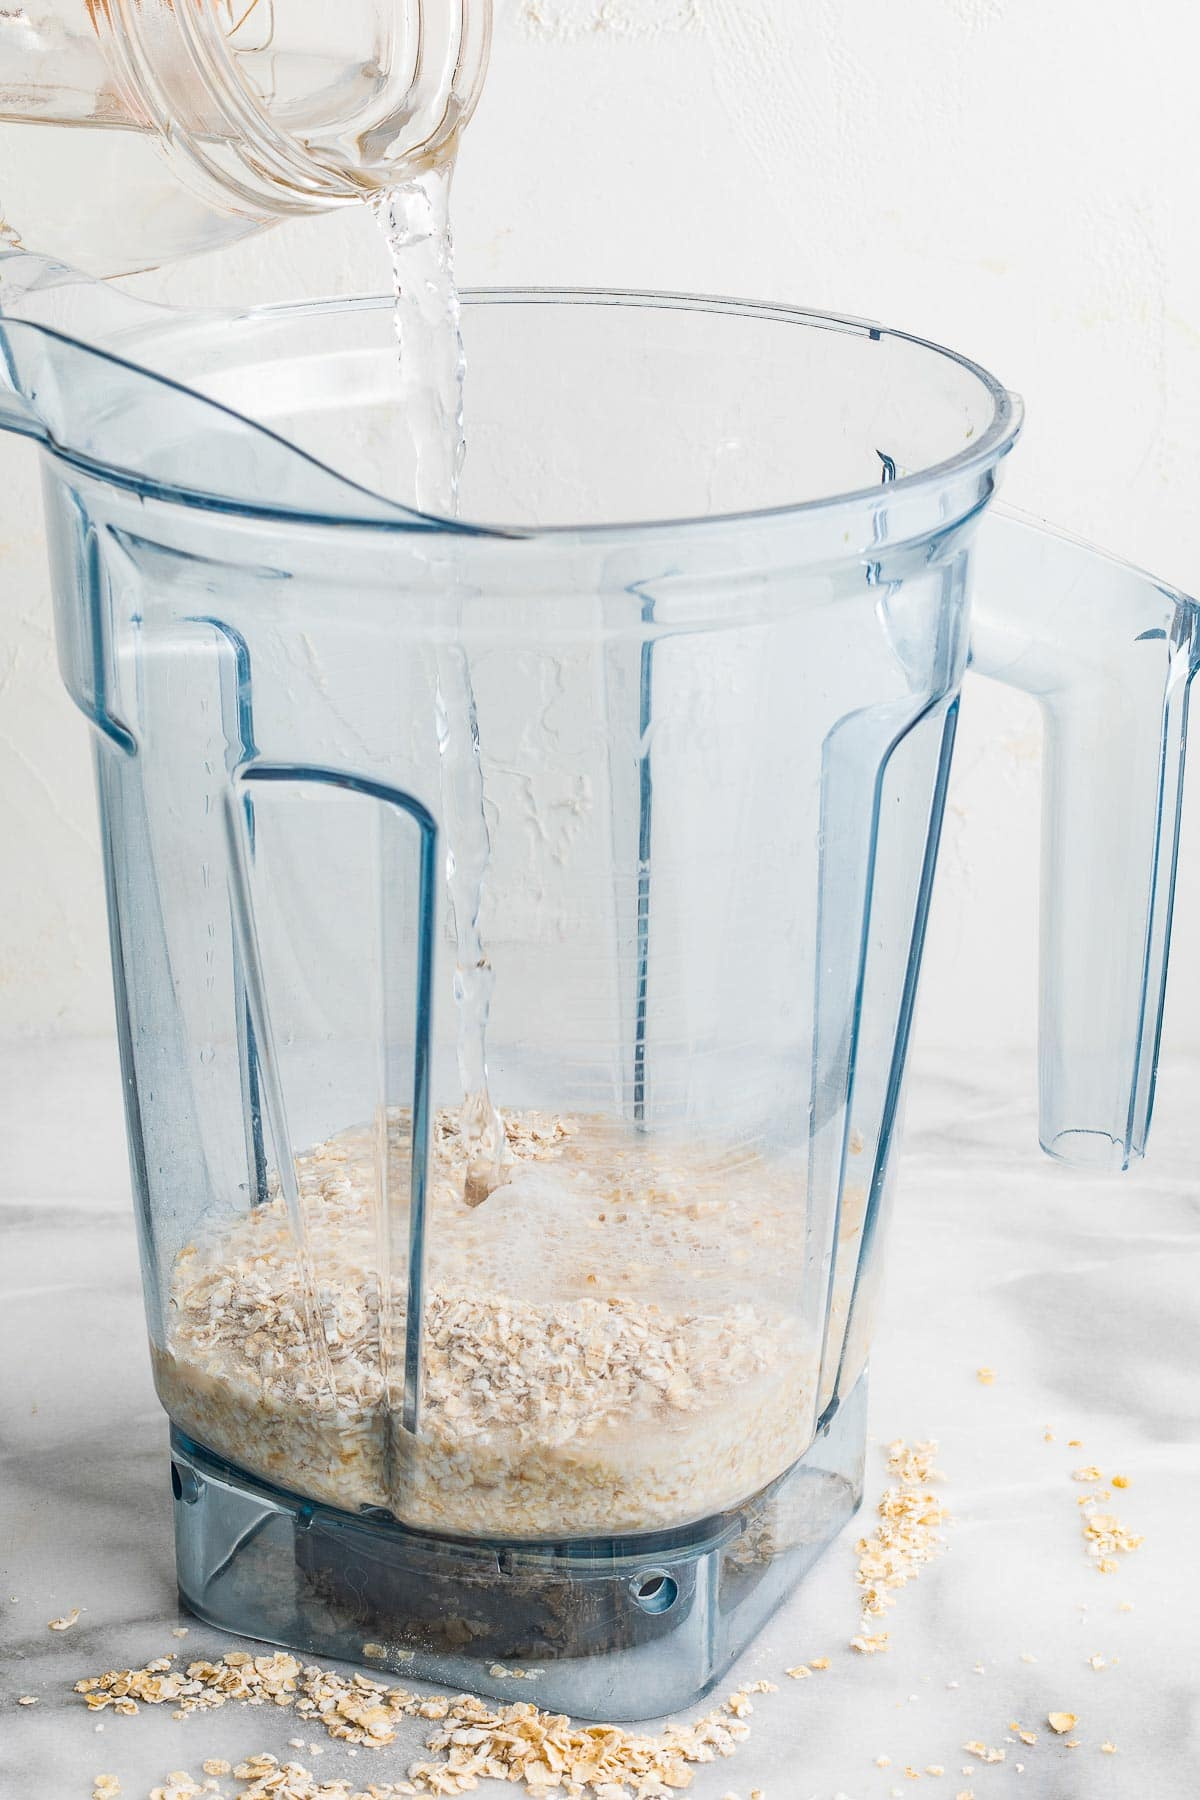 rolled oats in the blender with water